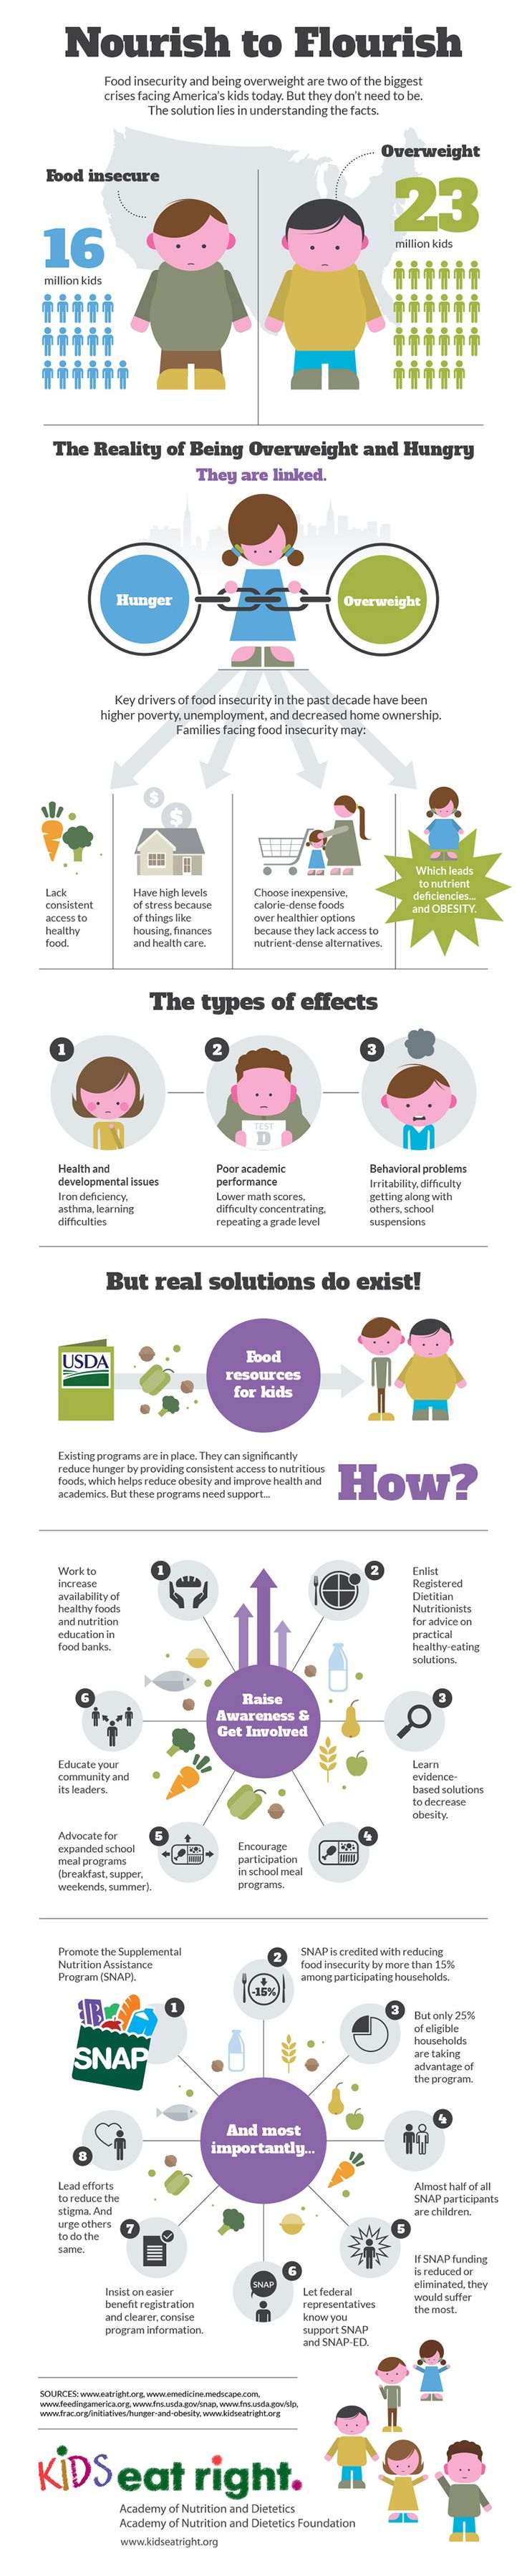 #Hungry AND #Overweight. A health paradox misunderstood by many. Check out this easy to read #infographic from @Eat Right.